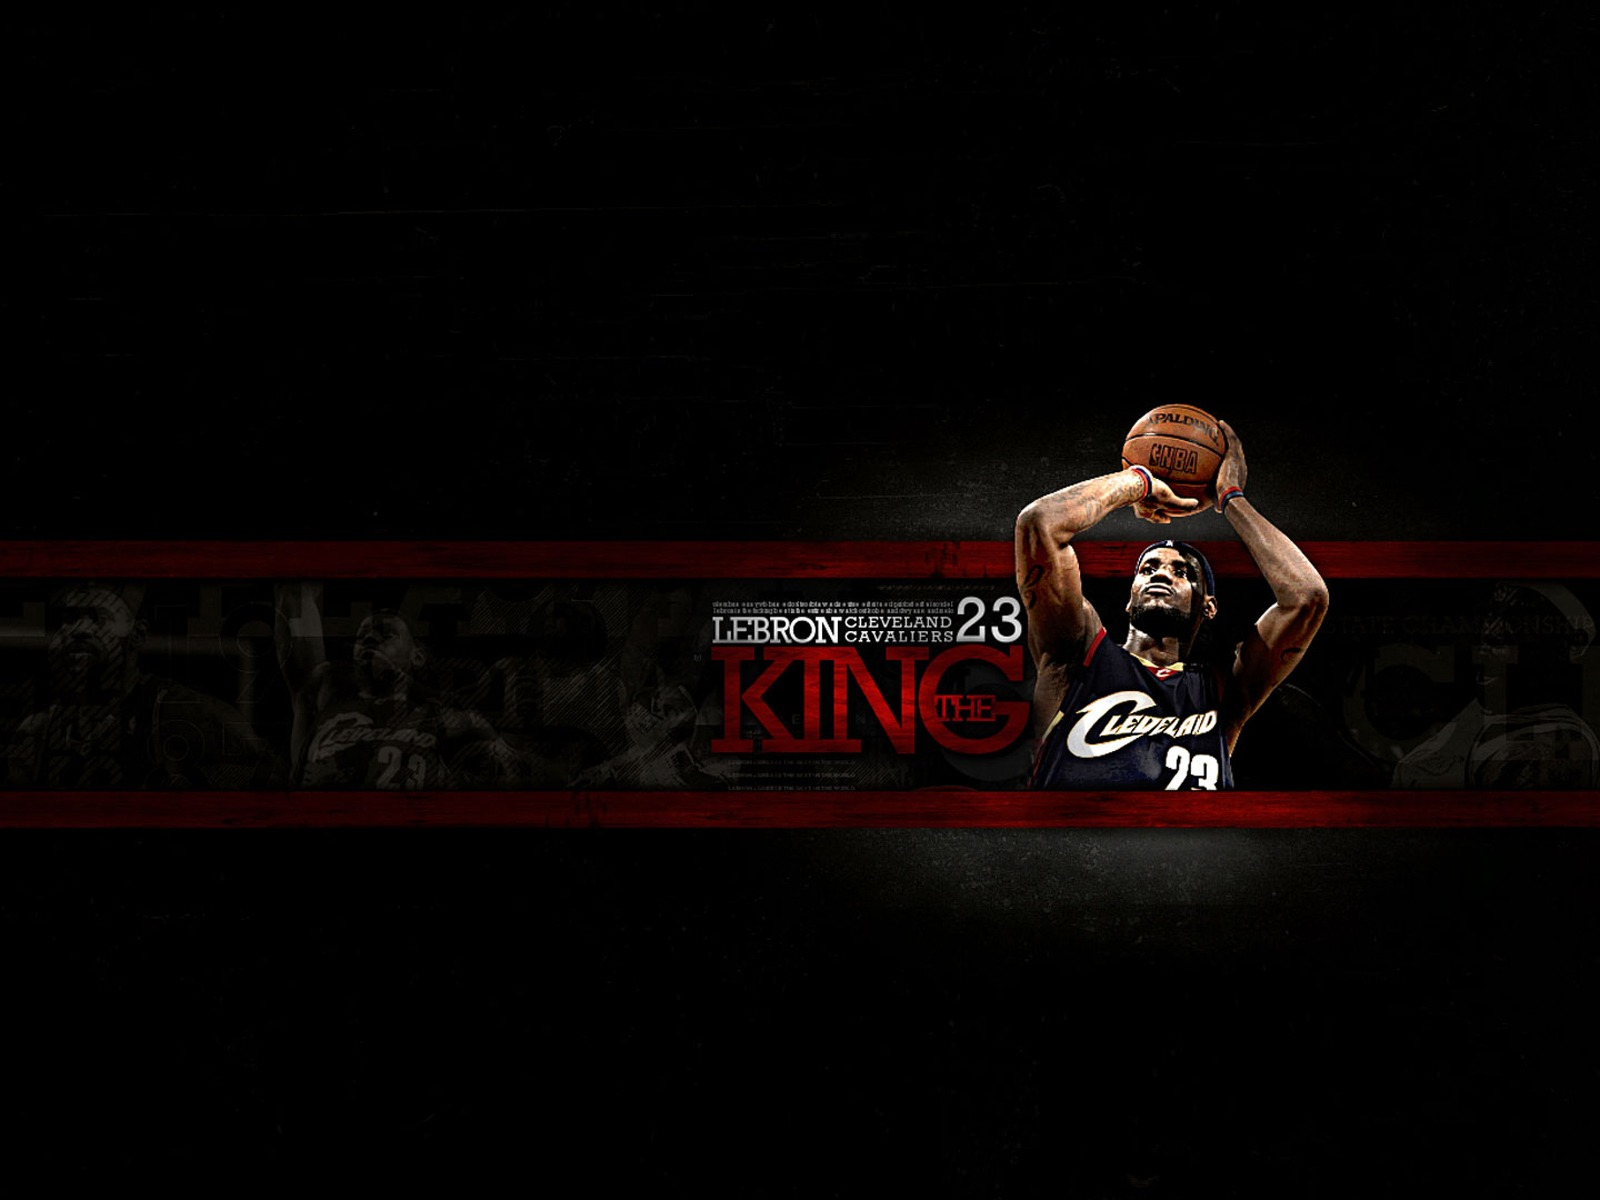 Wonderful Wallpaper Mac Lebron James - downloadfiles-wallpapers-lebron-james-wallpaper-nba-sports-PIC-MCH060374  Picture_829013.jpg